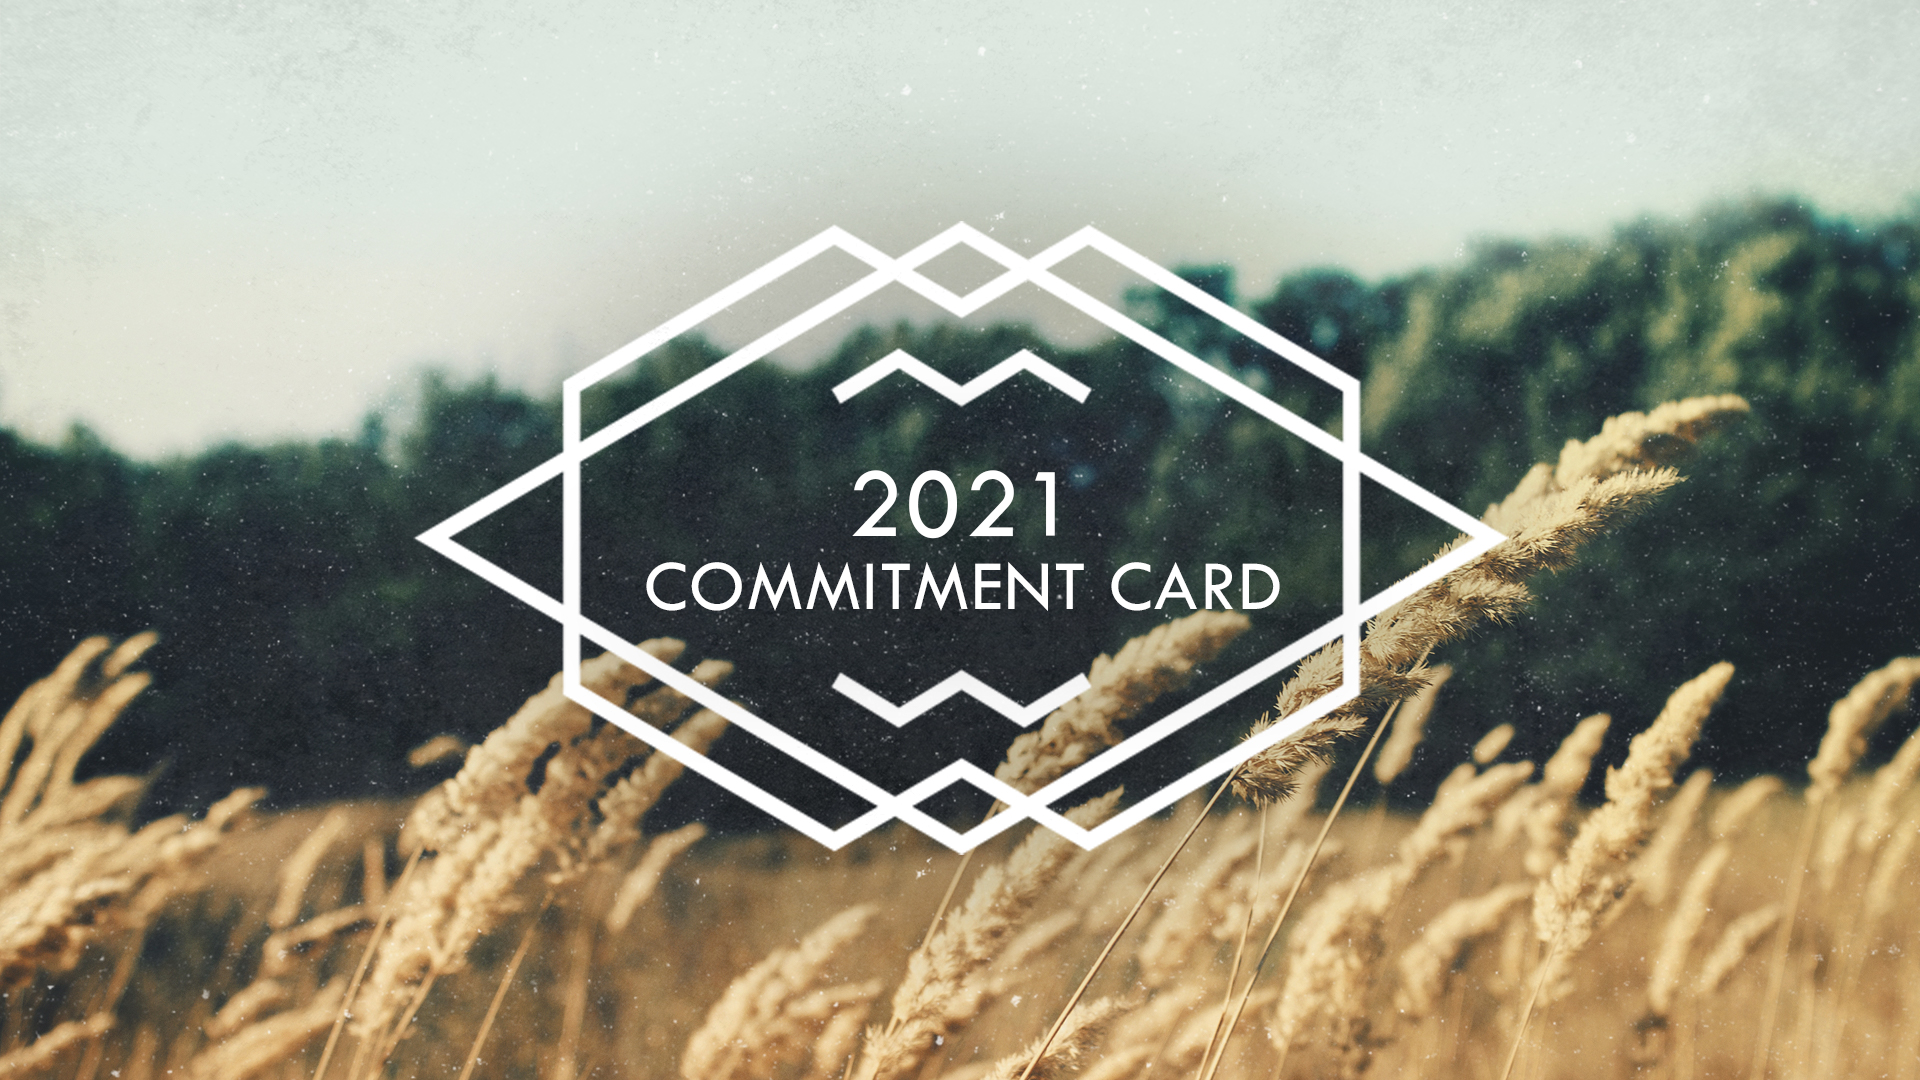 Legacy_2021 Commitment Card Slide